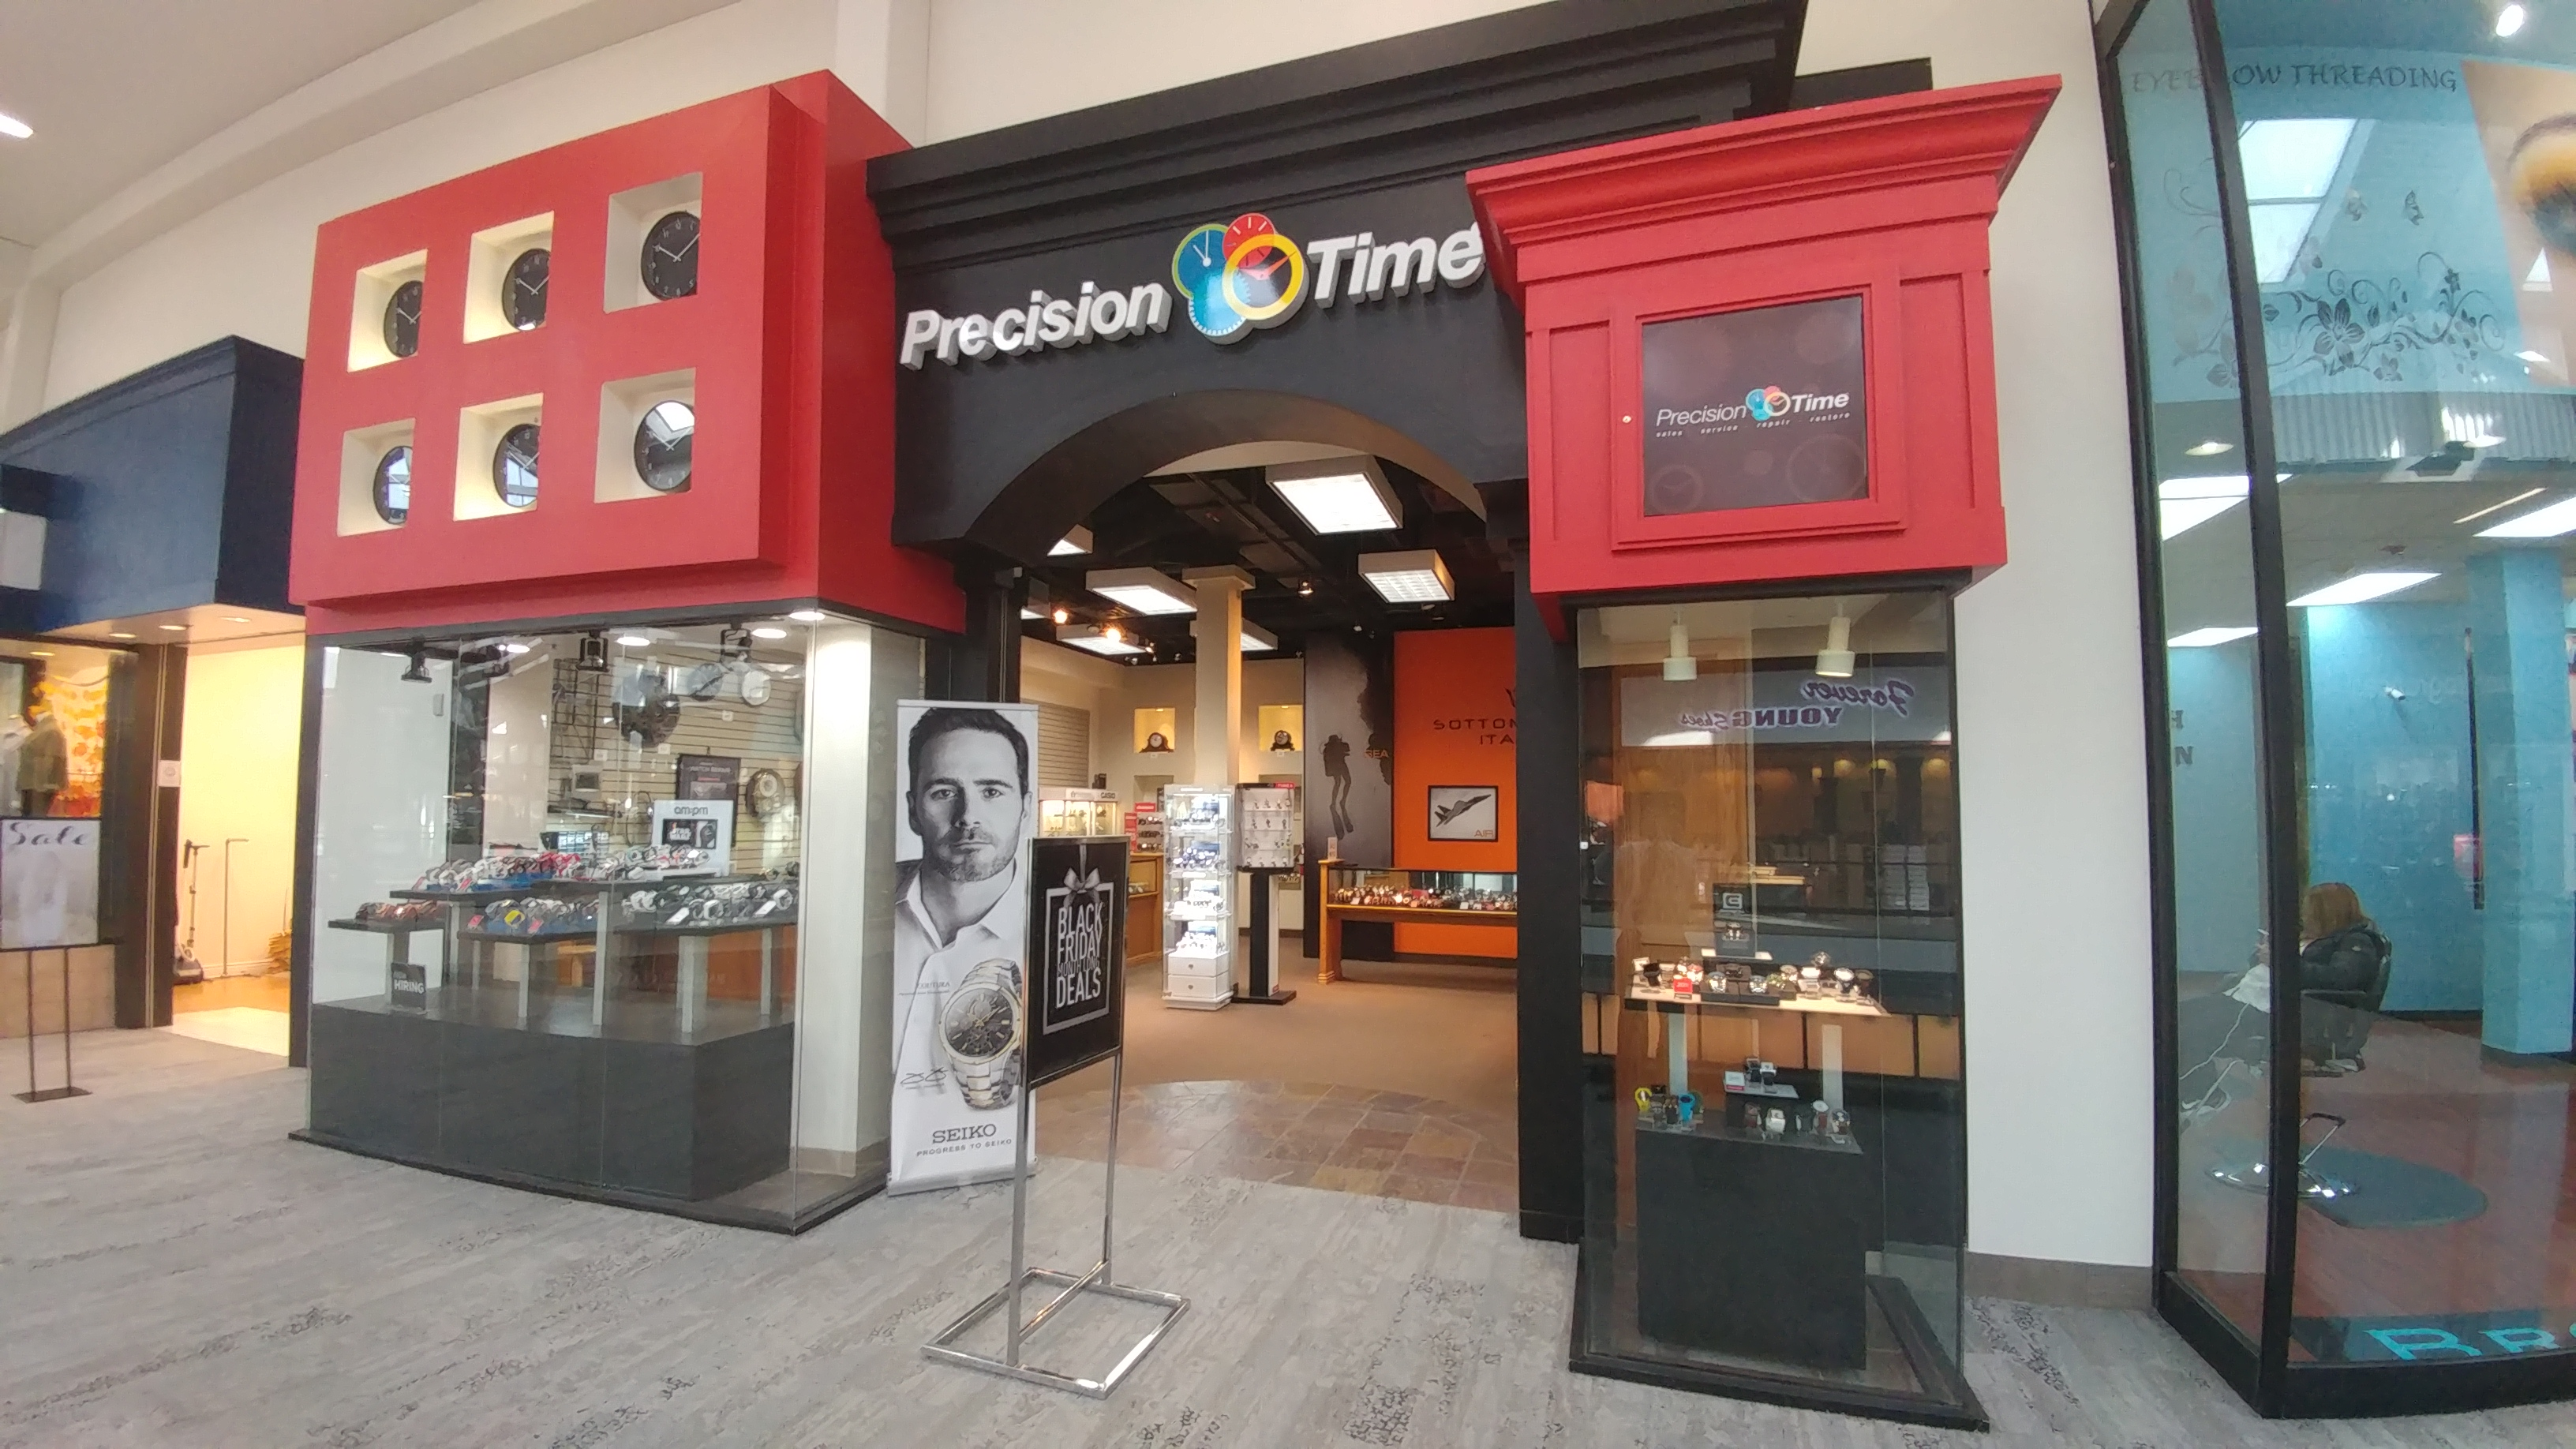 Precision Time - South Town Mall image 1